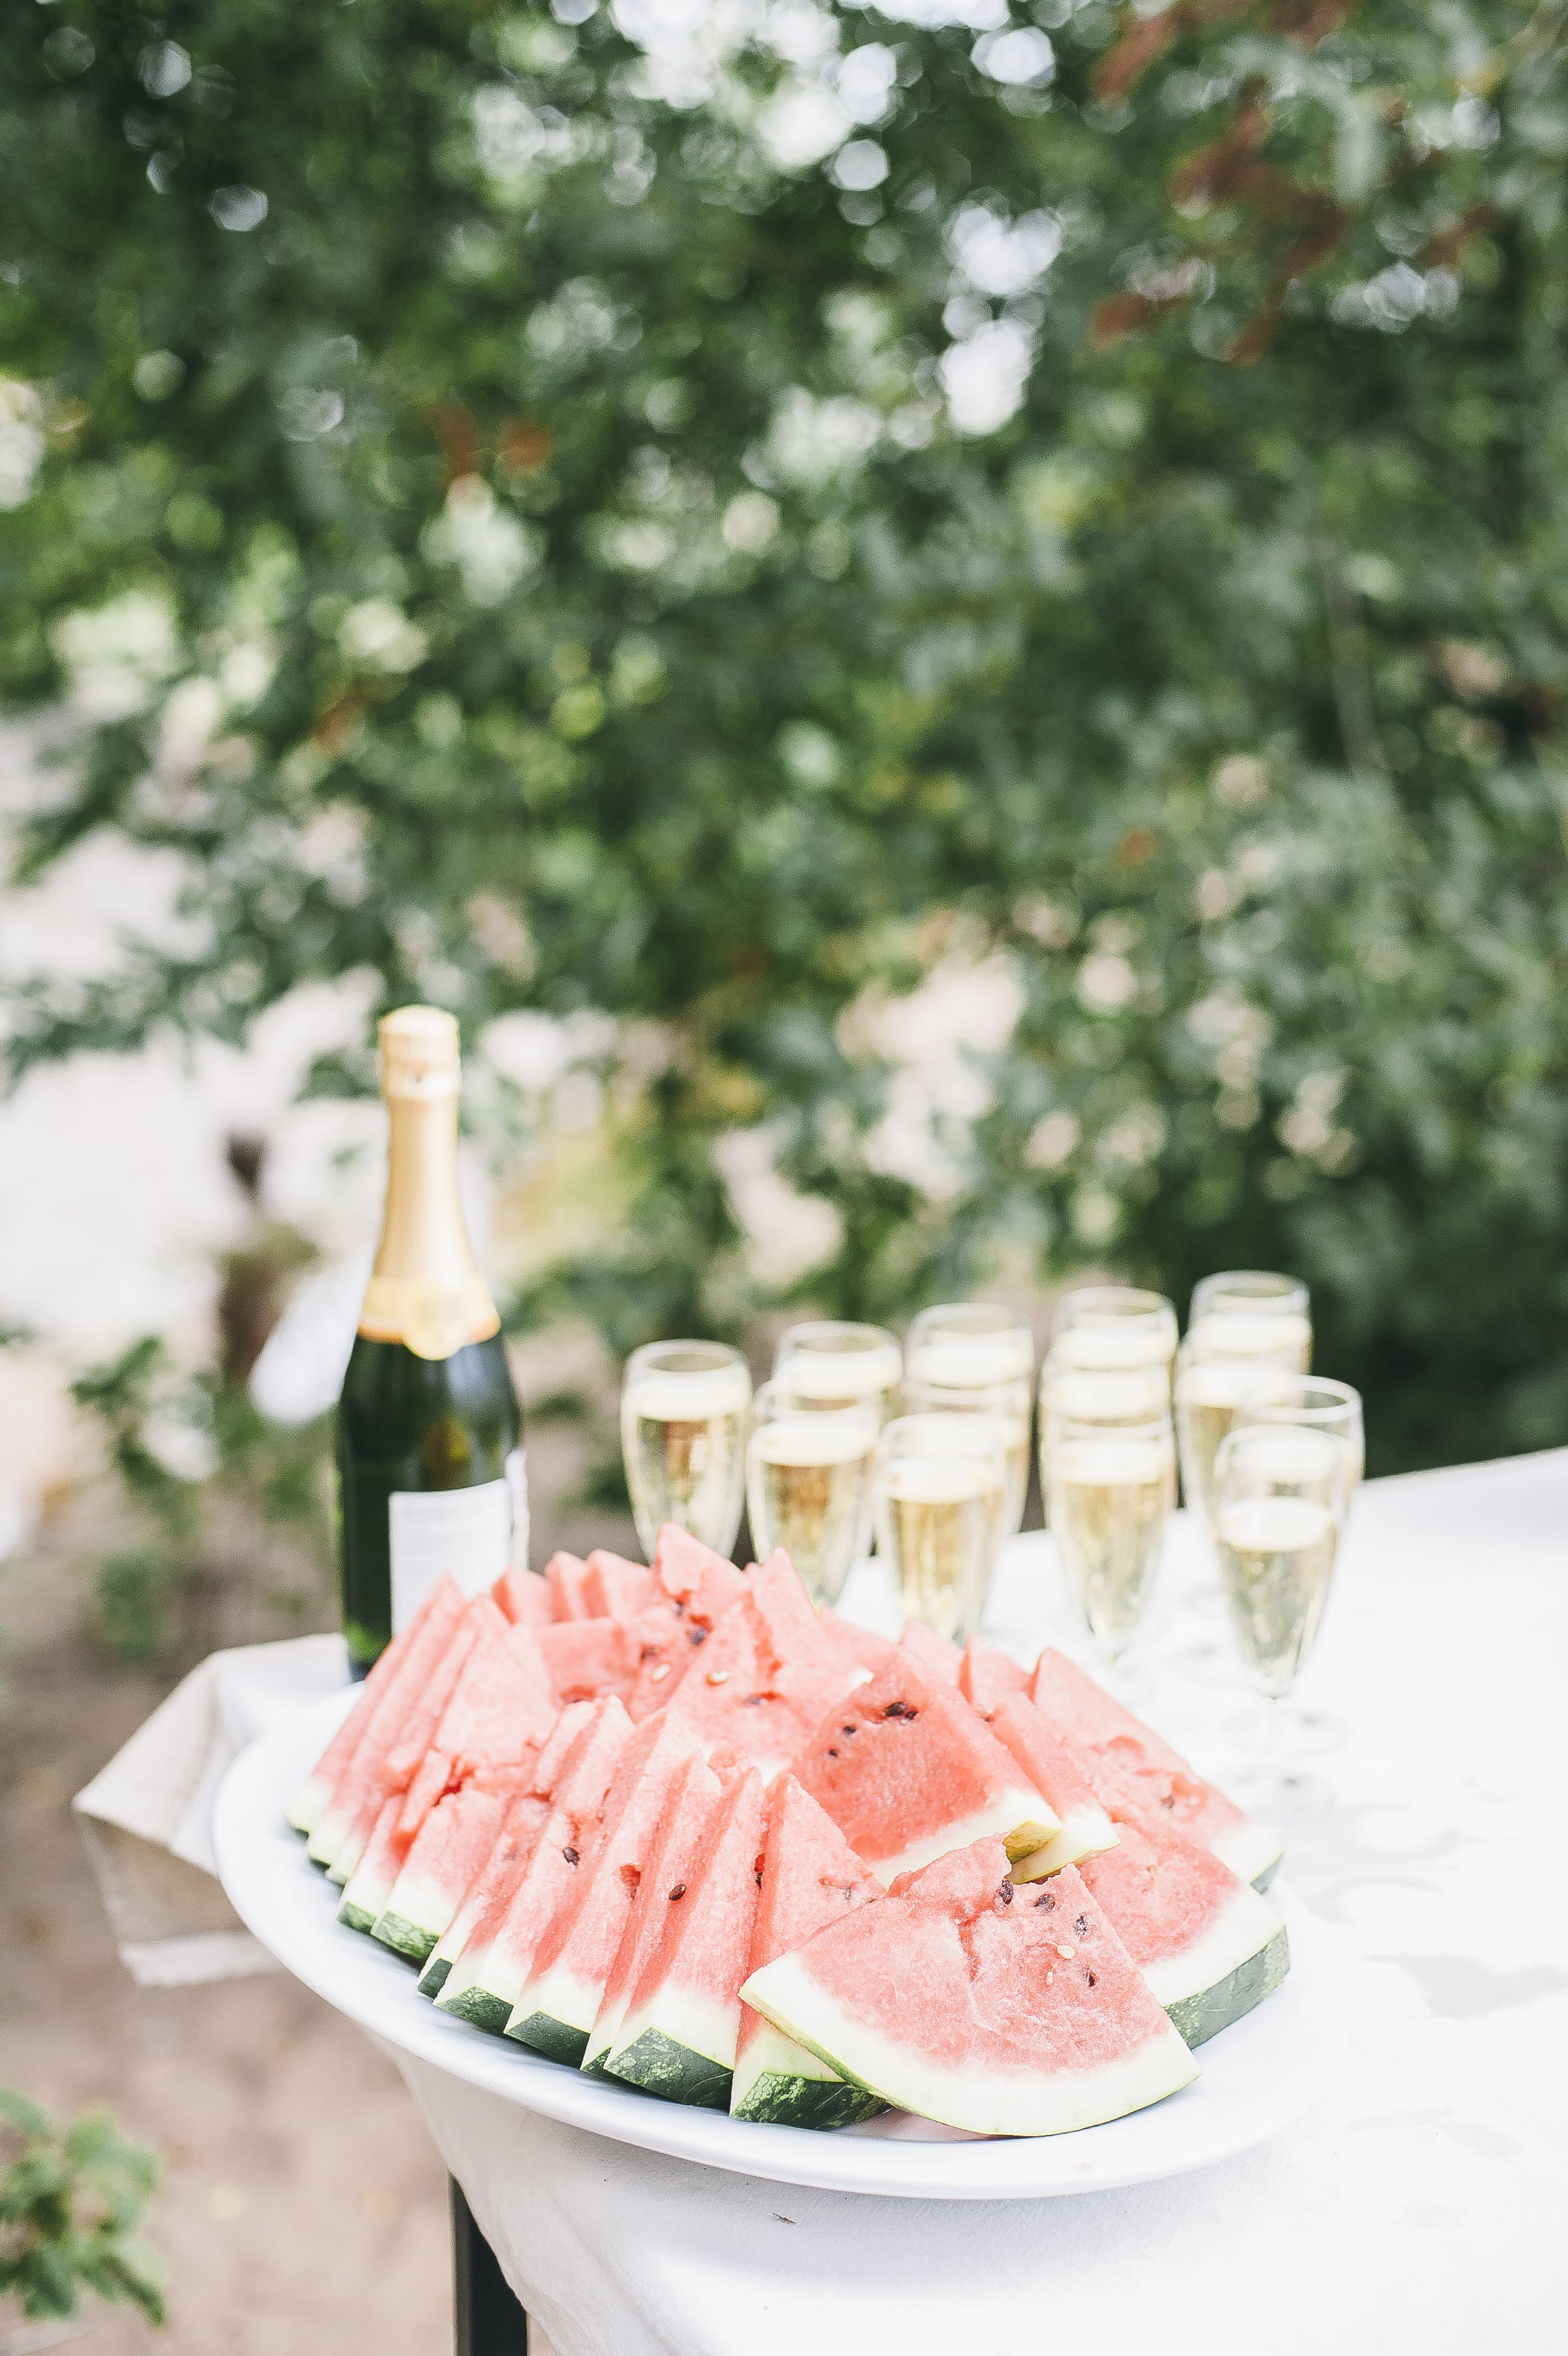 Selective Focus Photo of Bunch of Sliced Watermelons in White Bowl Near Champagne Bottle